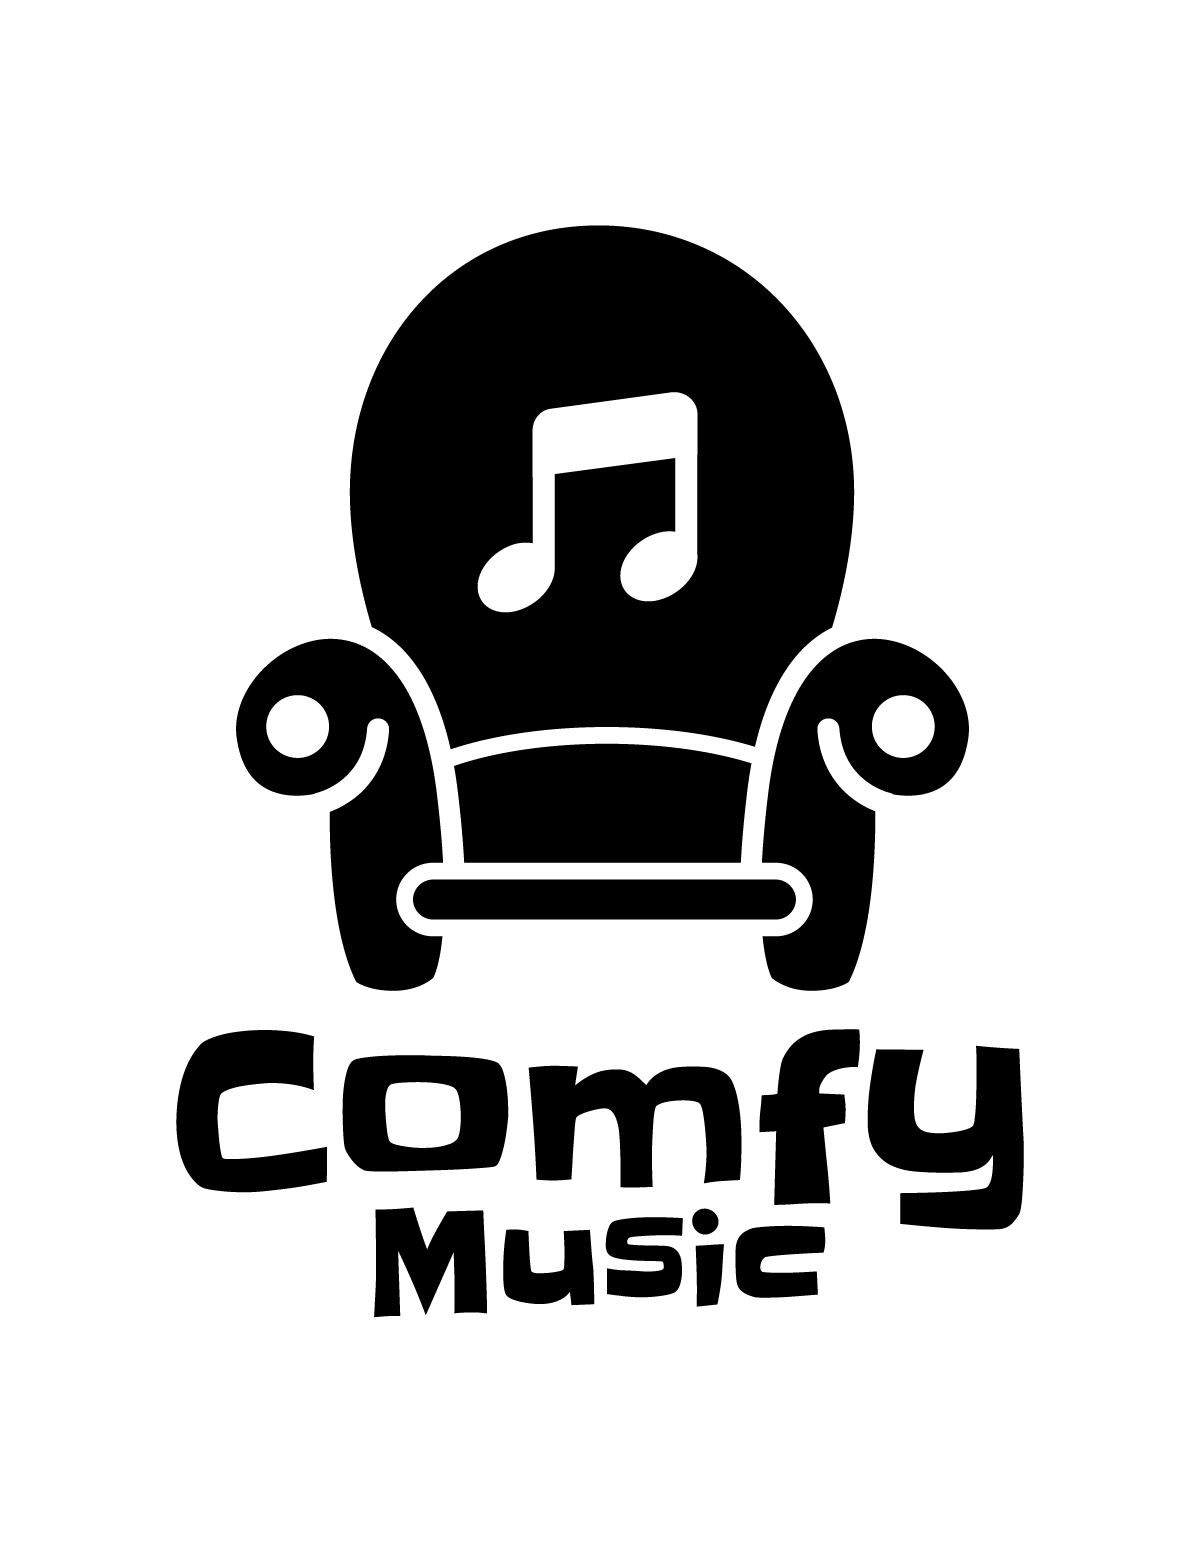 Comfy music logo black on white